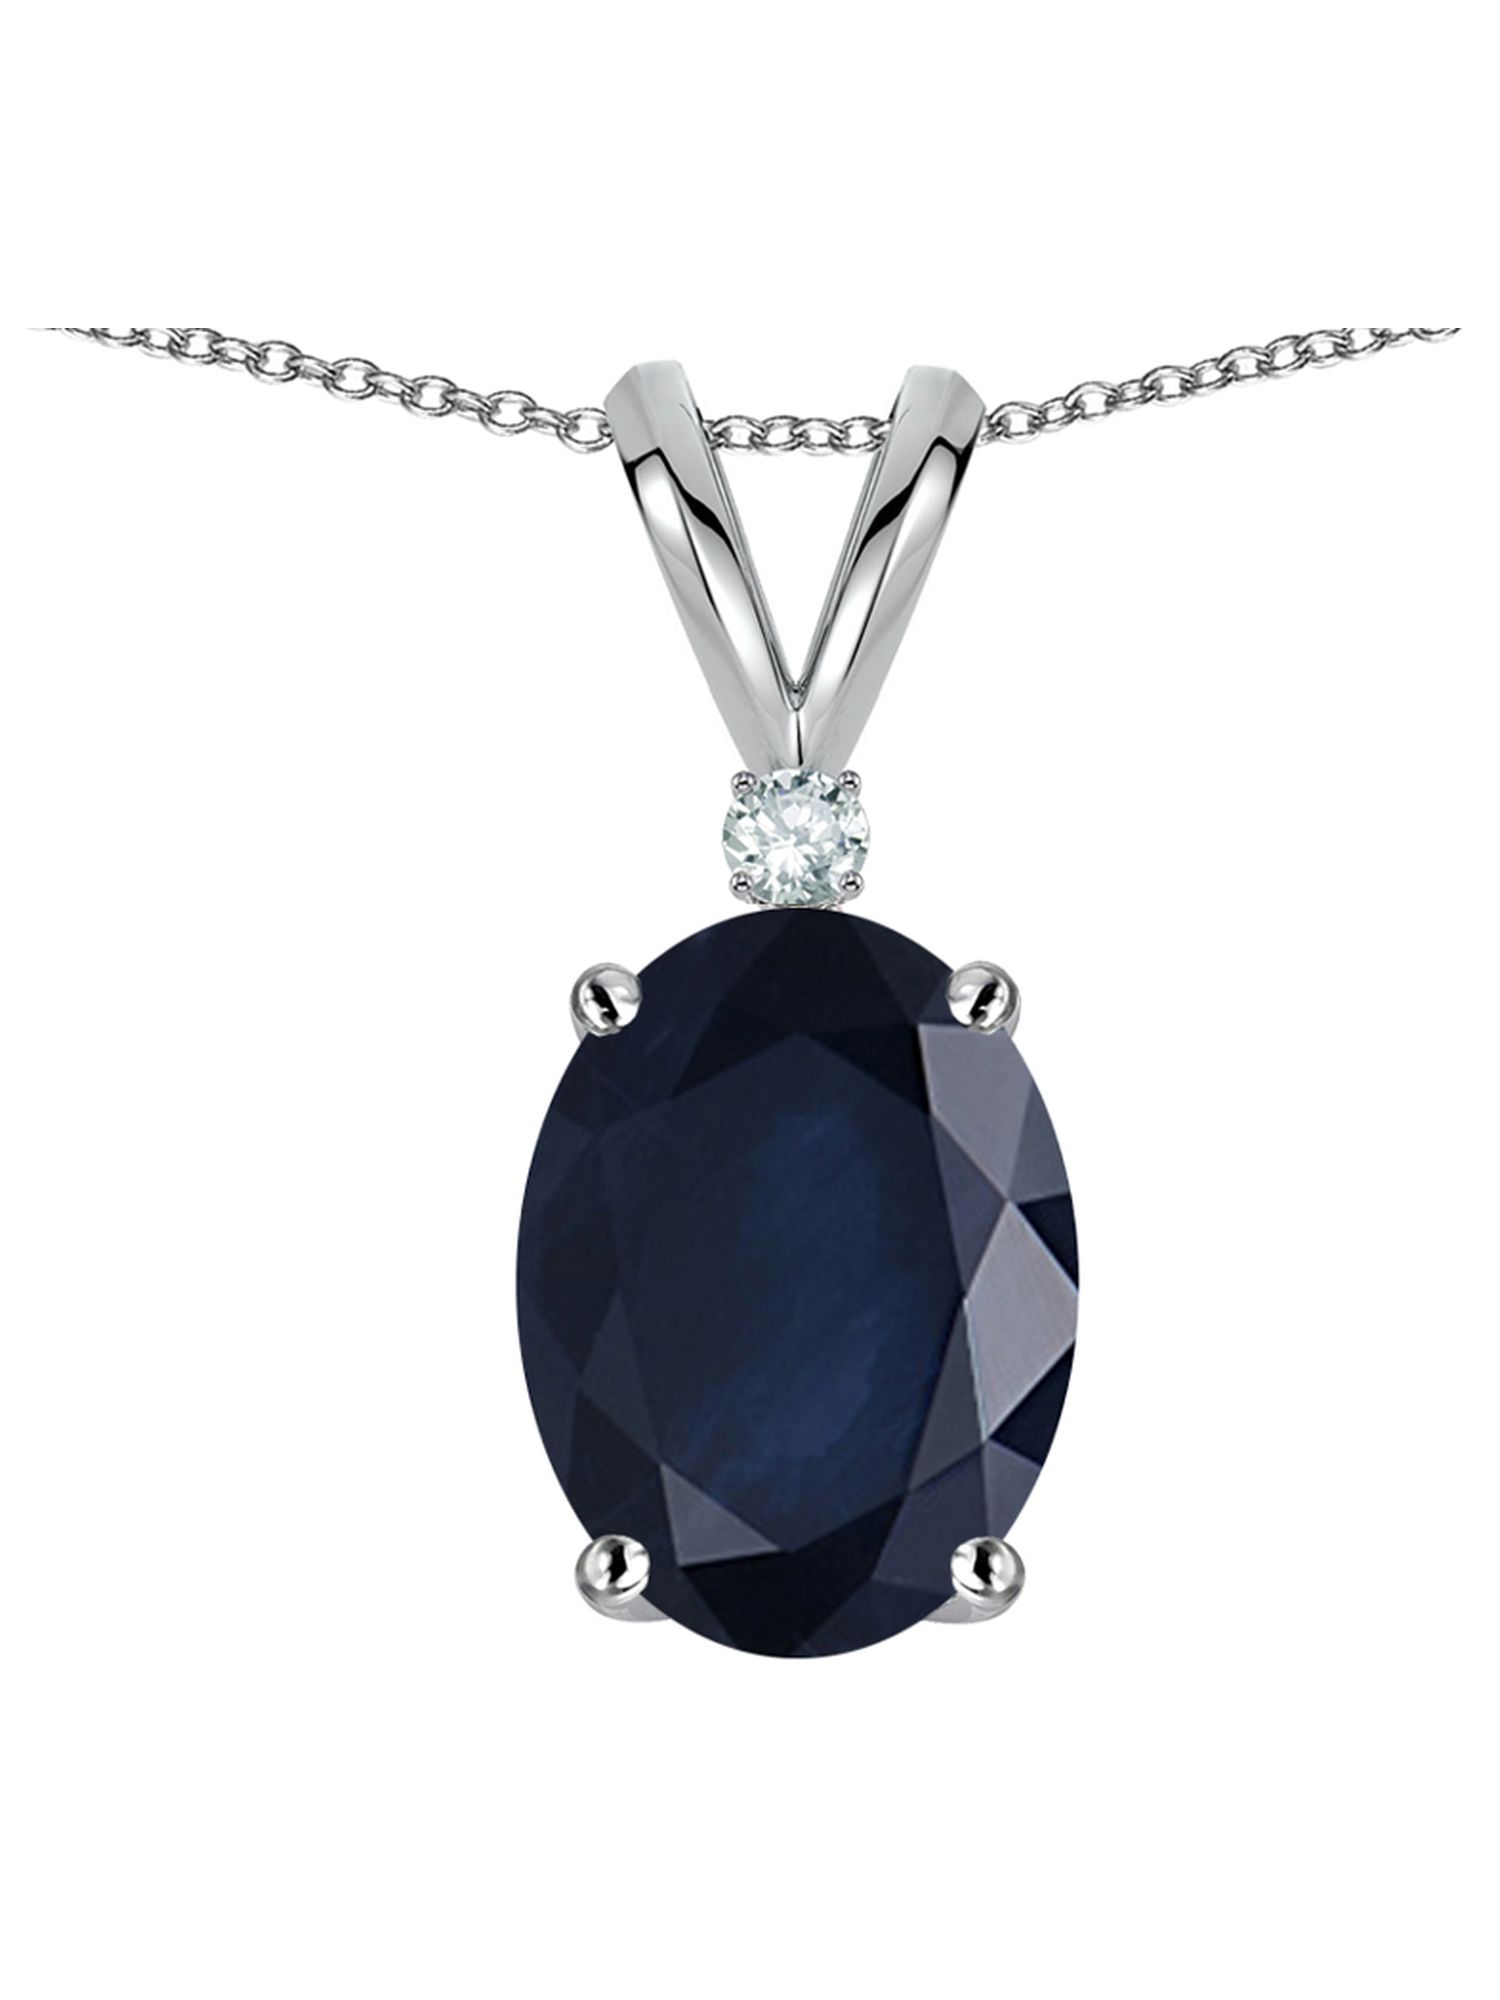 Star K Oval 7x5mm Genuine Sapphire Classic Rabbit Ears Pendant Necklace by Star K